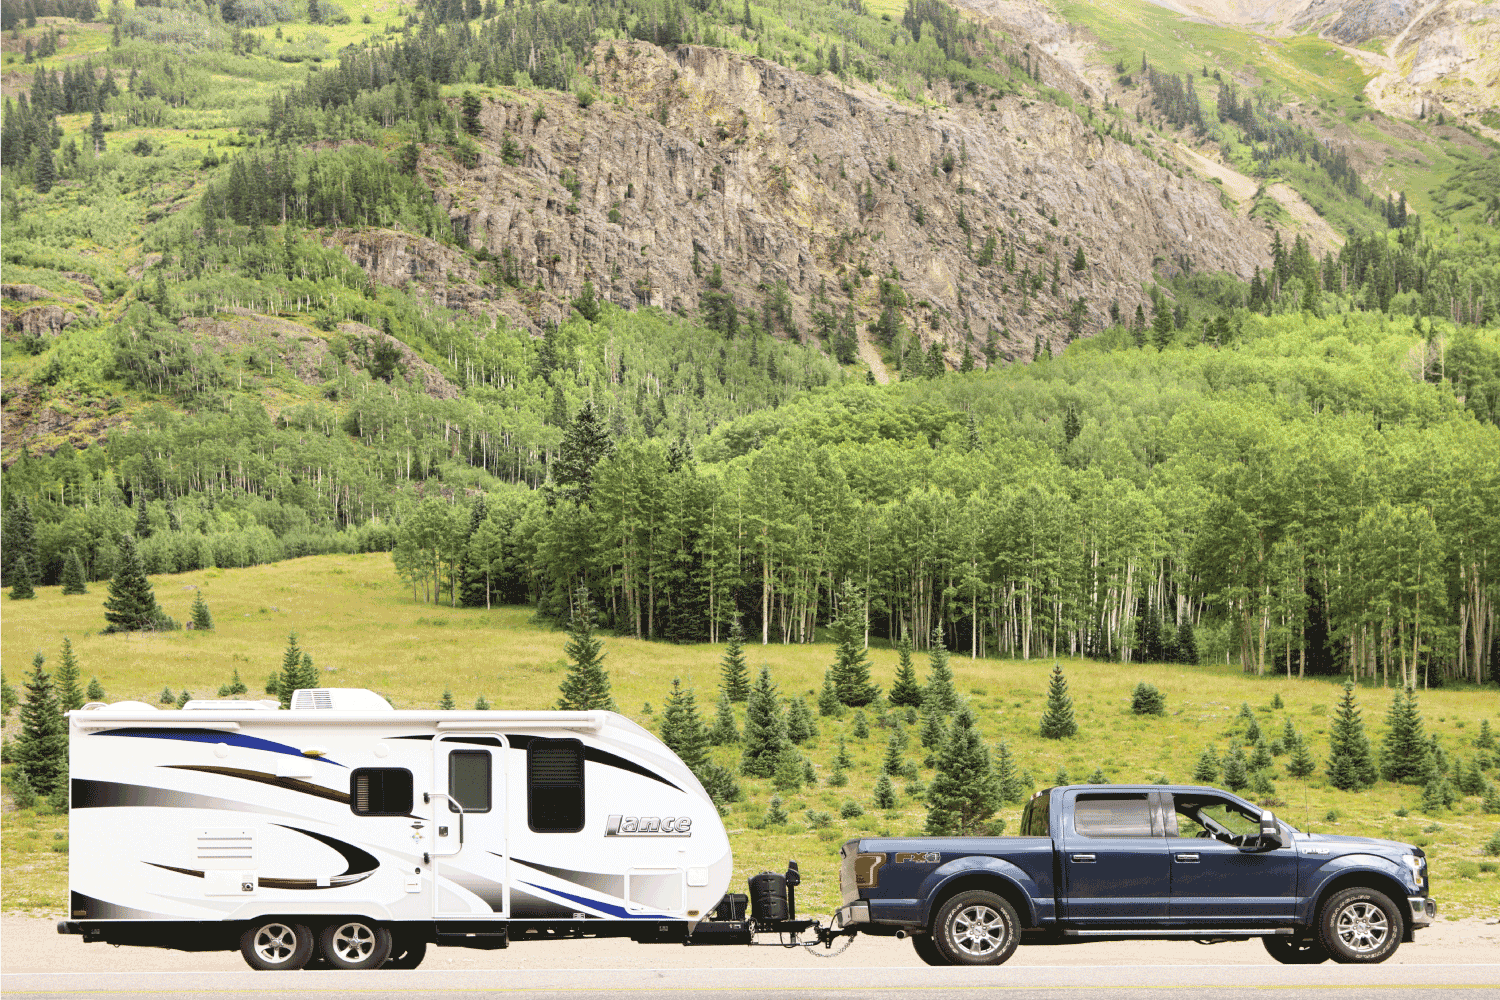 Ford F-150 truck and Lance travel trailer are pulled to the roadside in the San Juan Mountains.